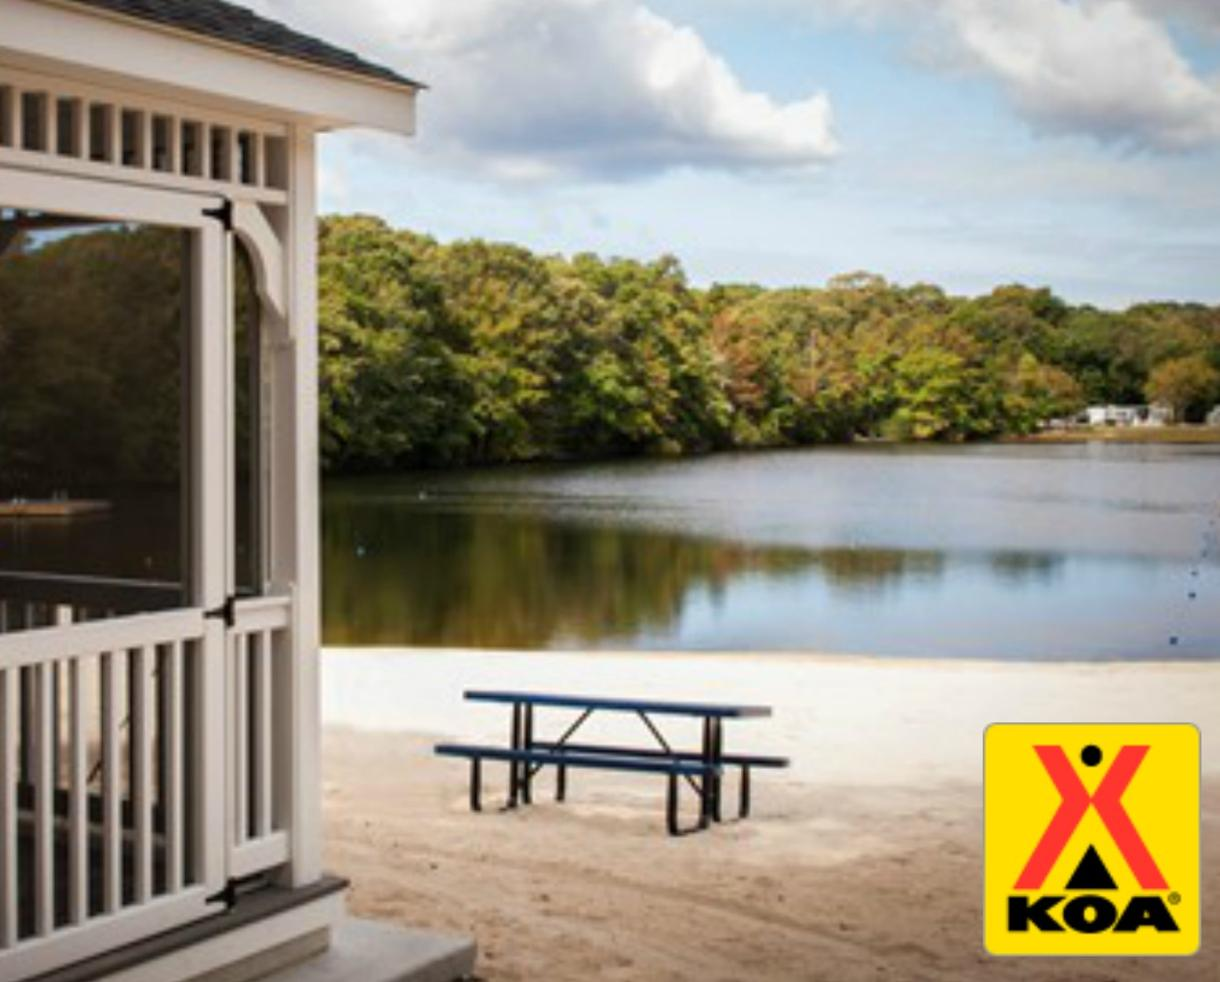 $49 for 2-Night Tent Site + Firewood OR $175 for Deluxe Cabin at Cape May KOA - New Jersey (Up to 38% Off)